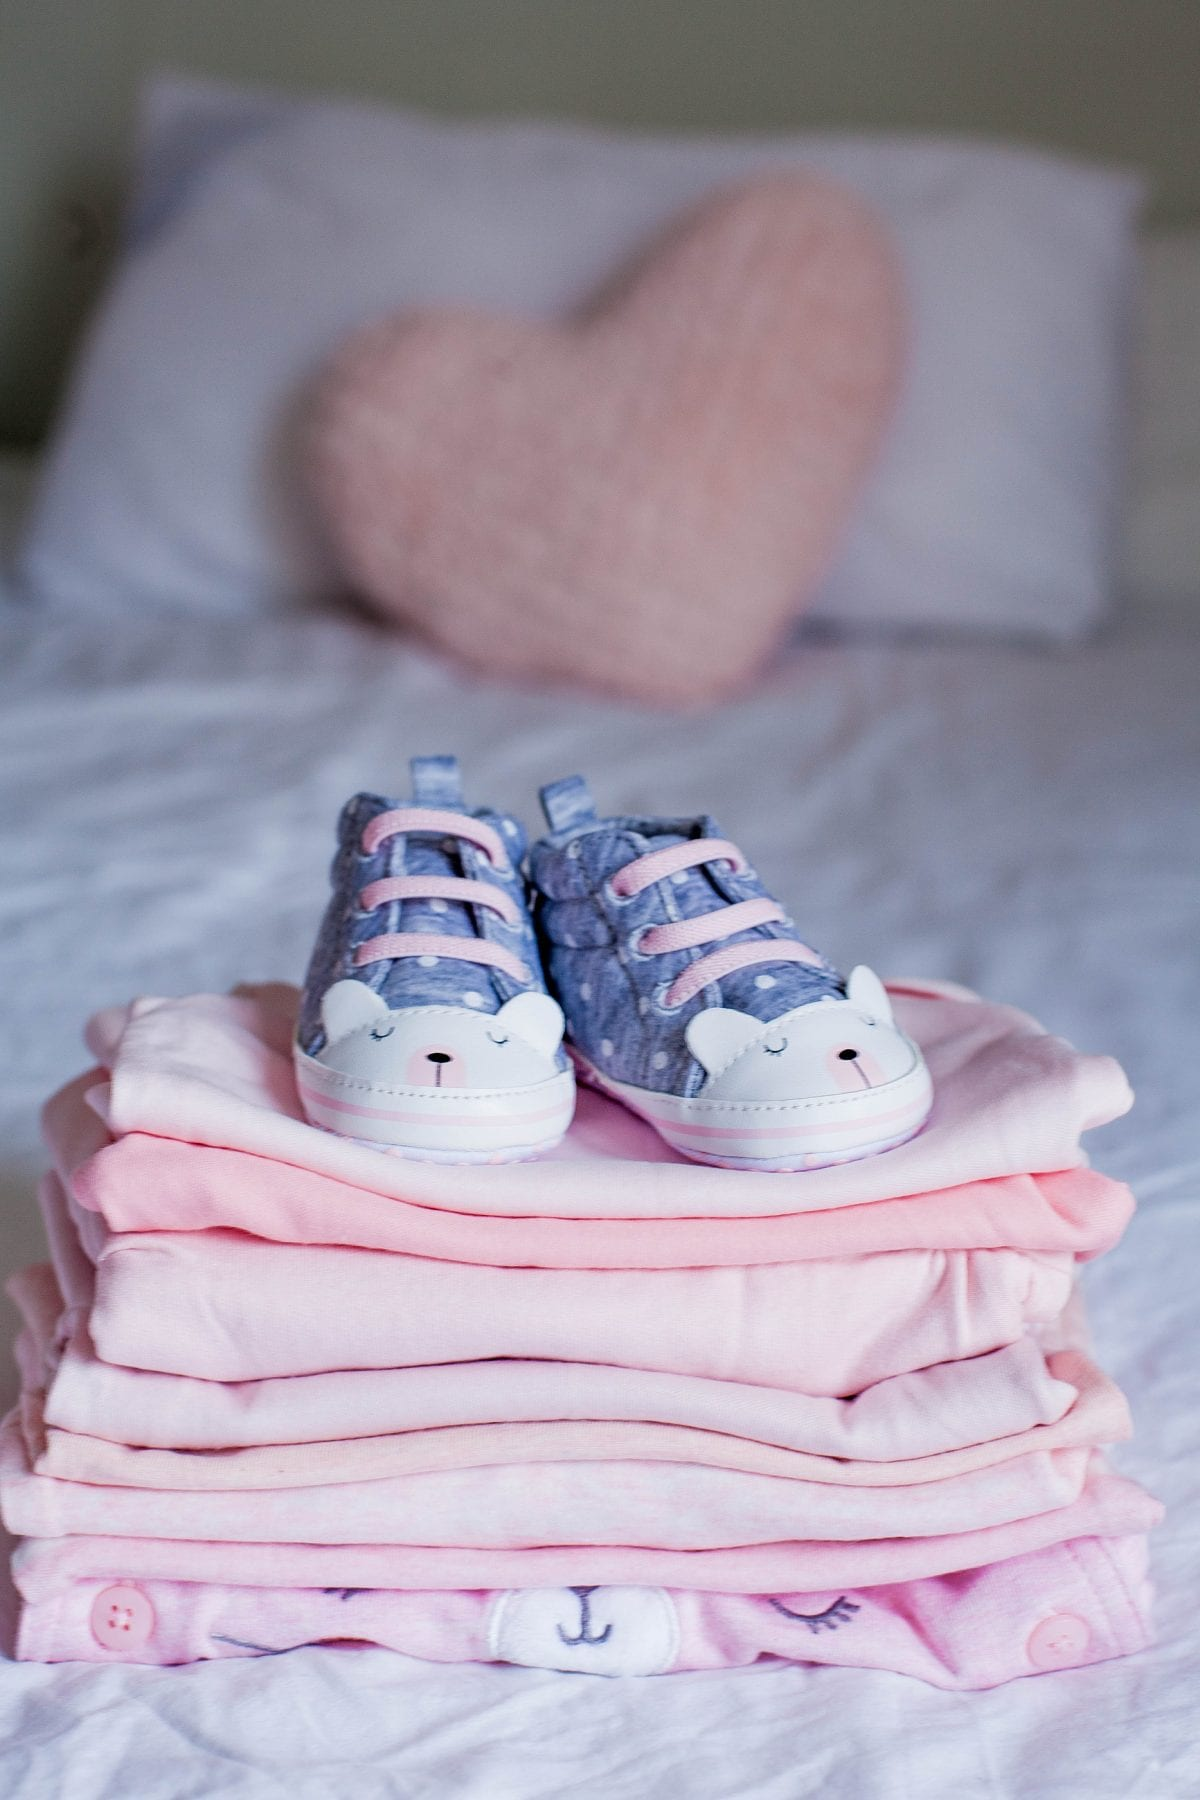 How to Store and Organize Baby Clothes